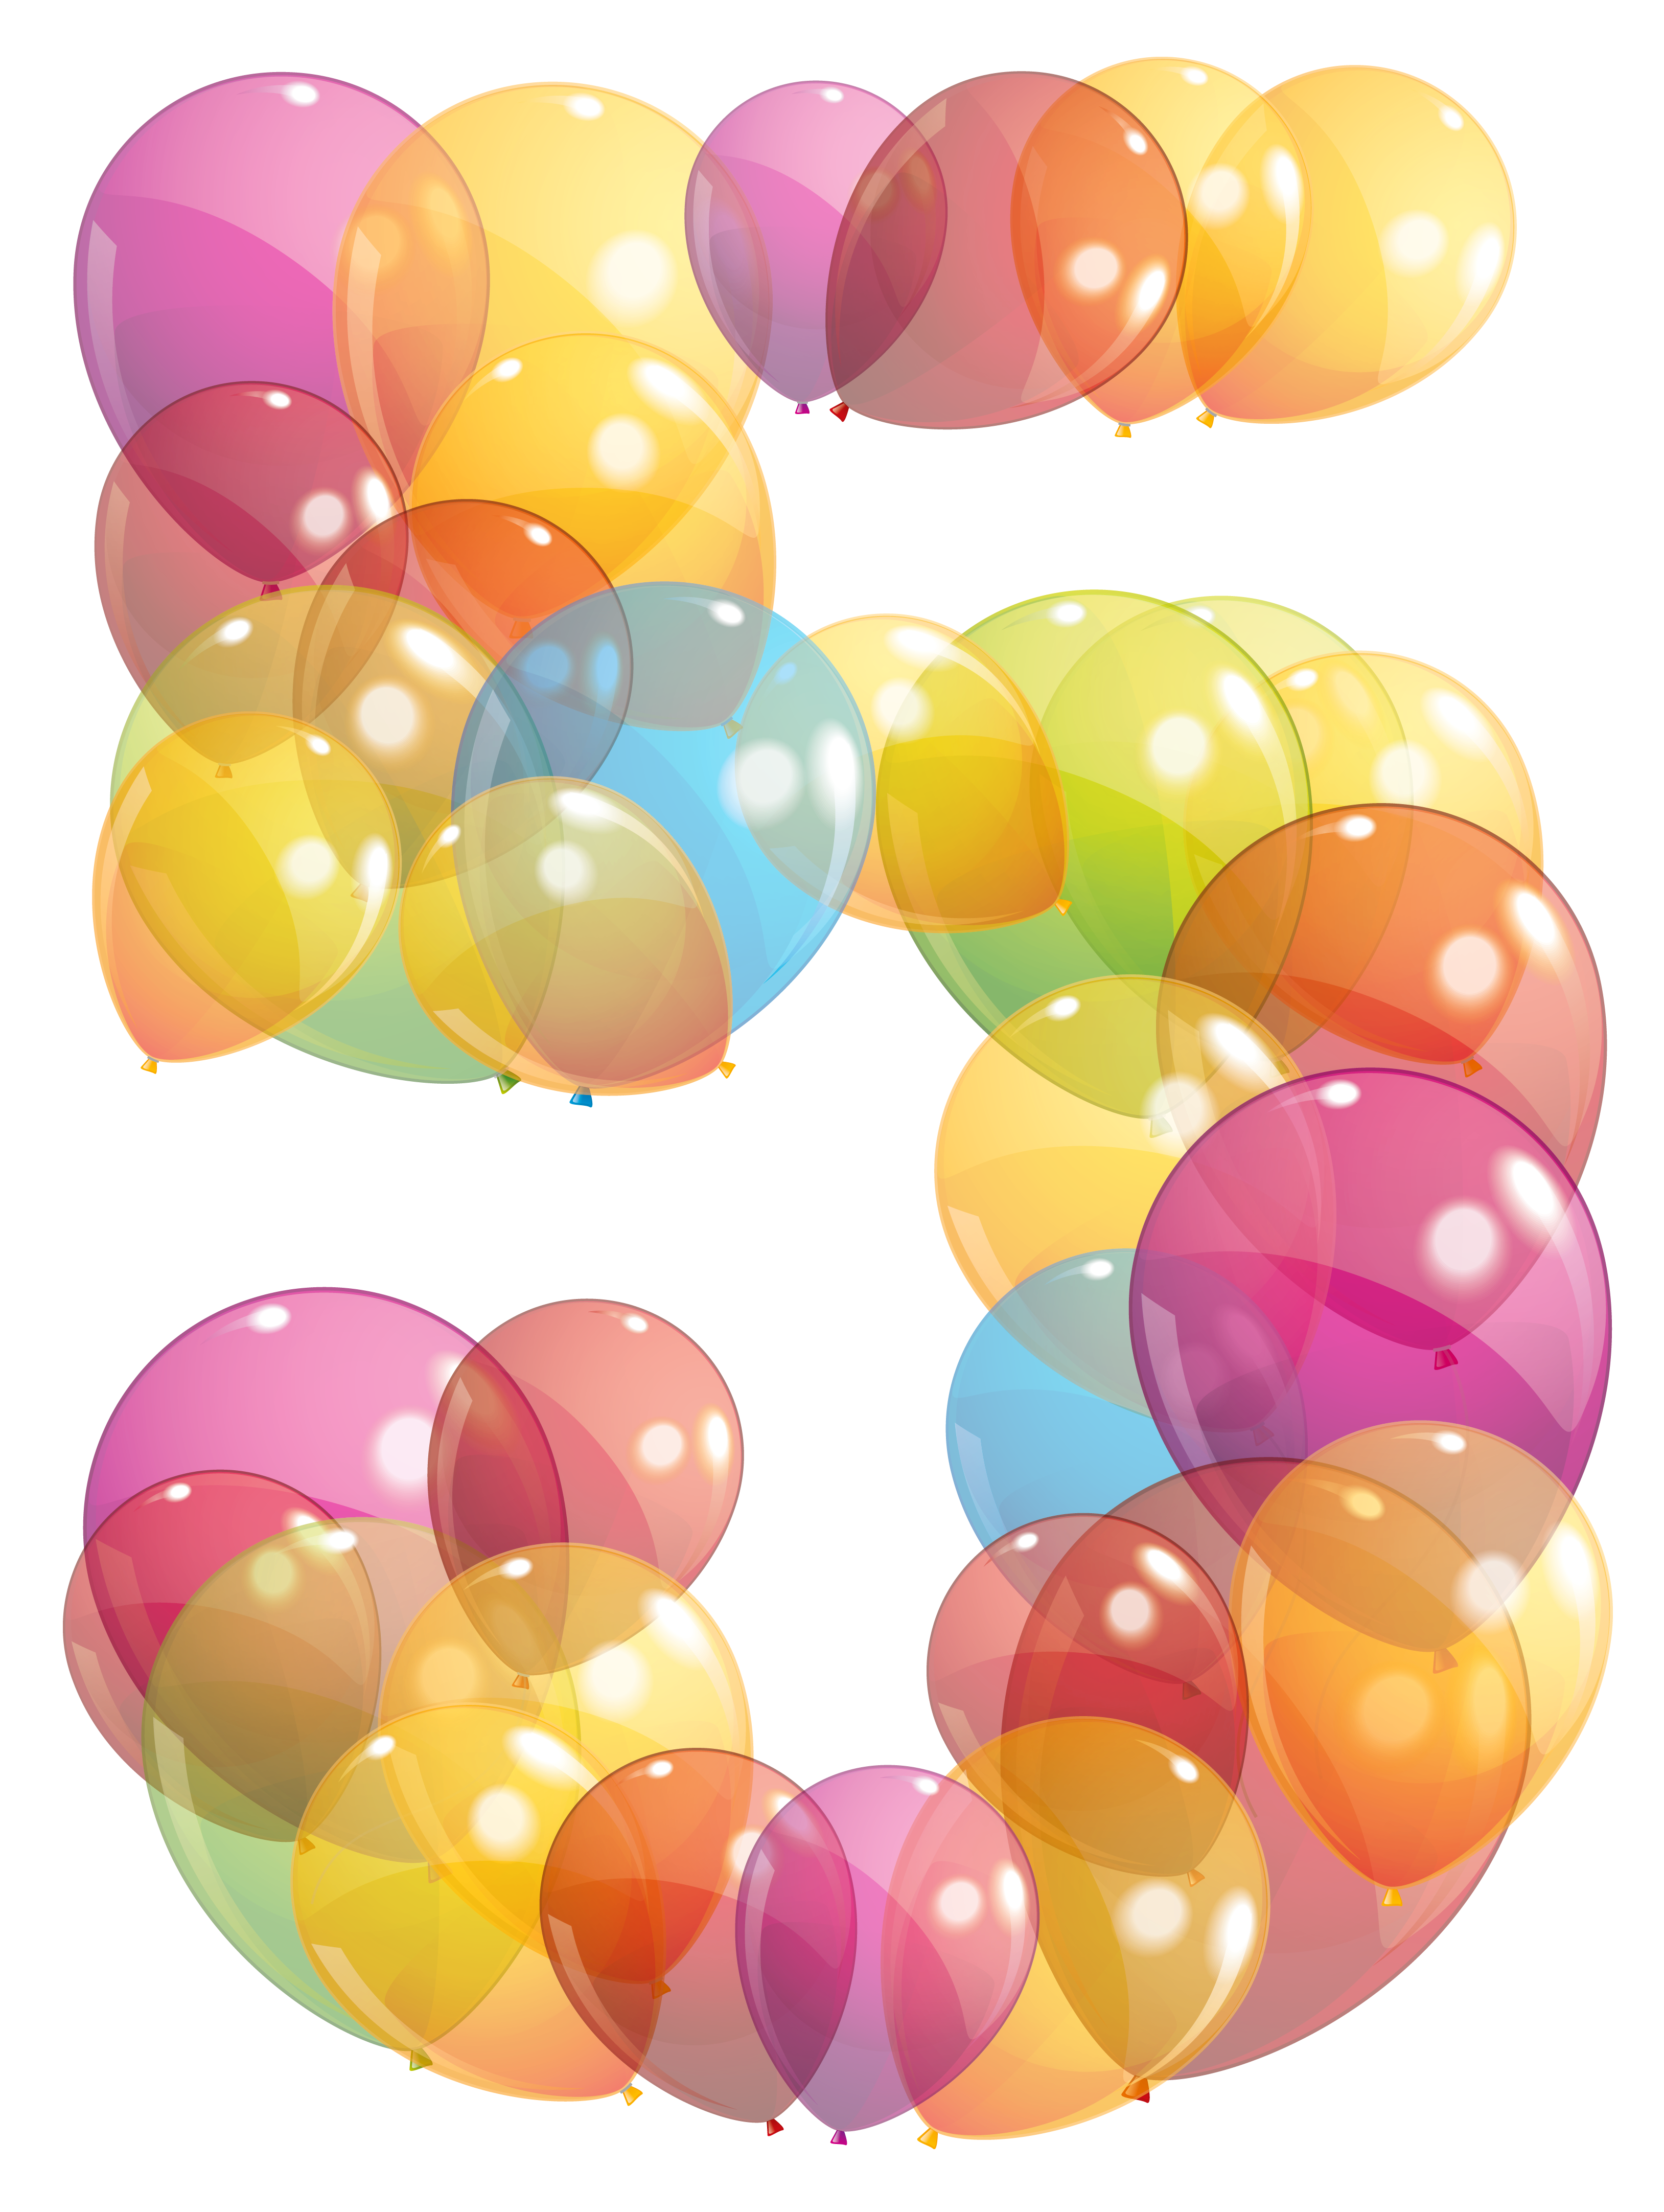 Number balloons clipart picture library download Transparent Five Number of Balloons PNG Clipart Image ... picture library download